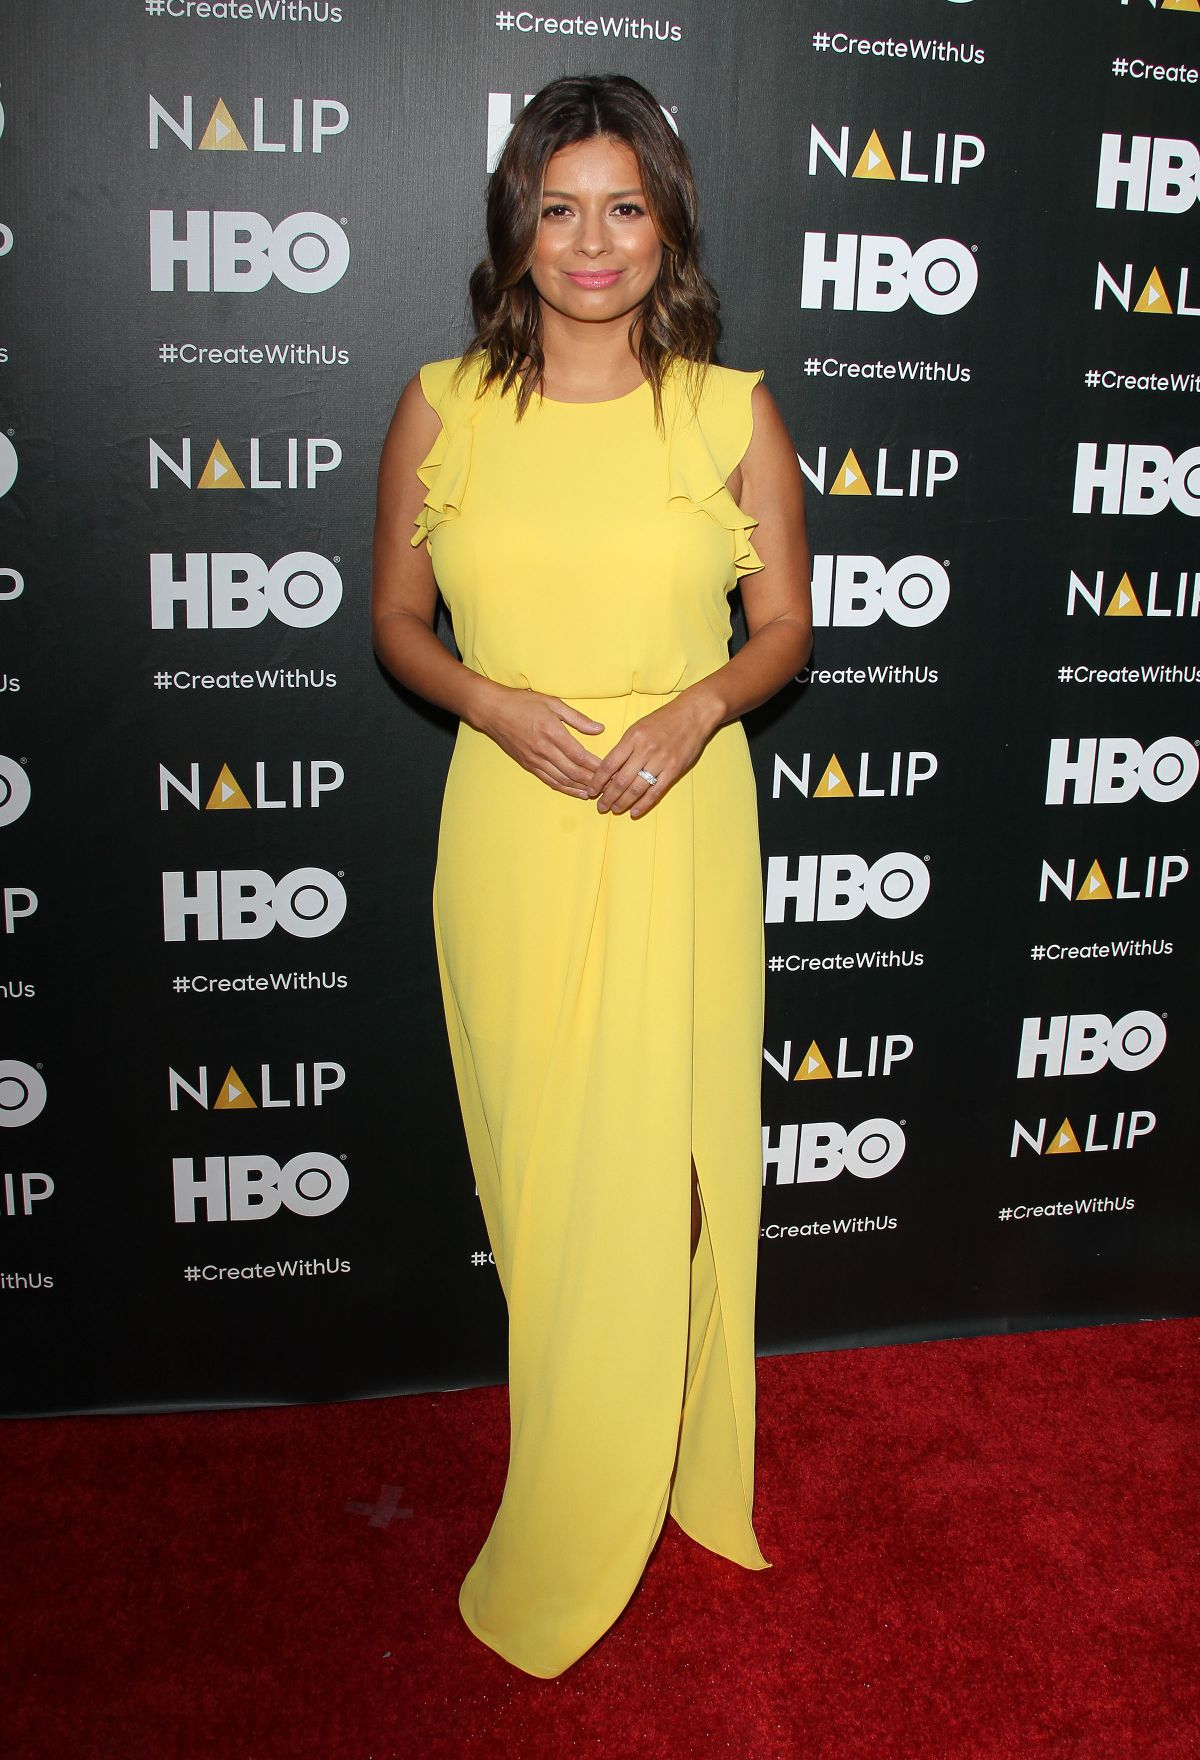 KRISTINA GUERRERO at Nalip Latino Media Awards in Los Angeles 06/24/2017